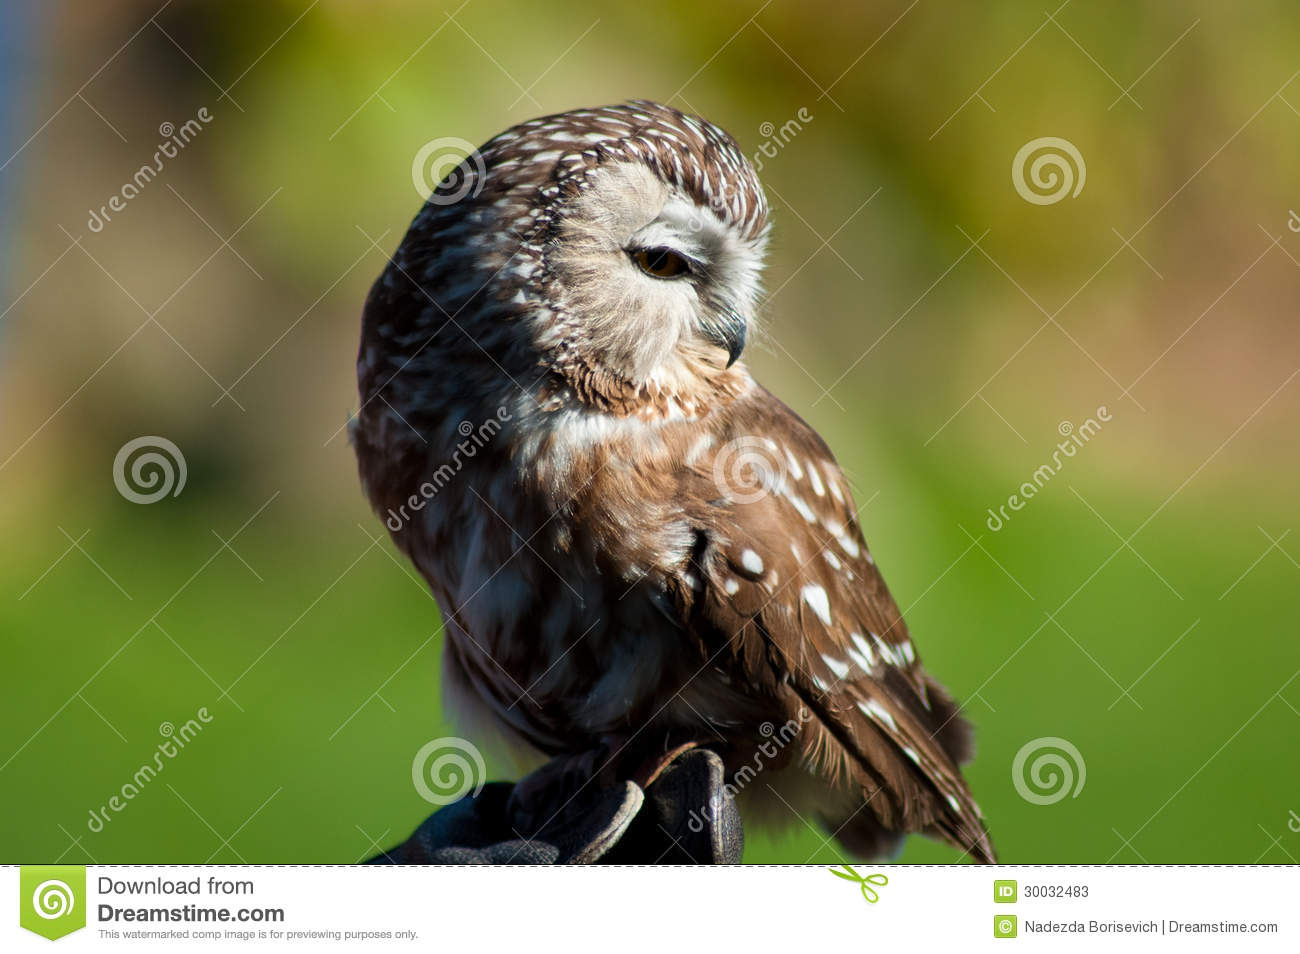 Saw Whet Owl clipart #14, Download drawings